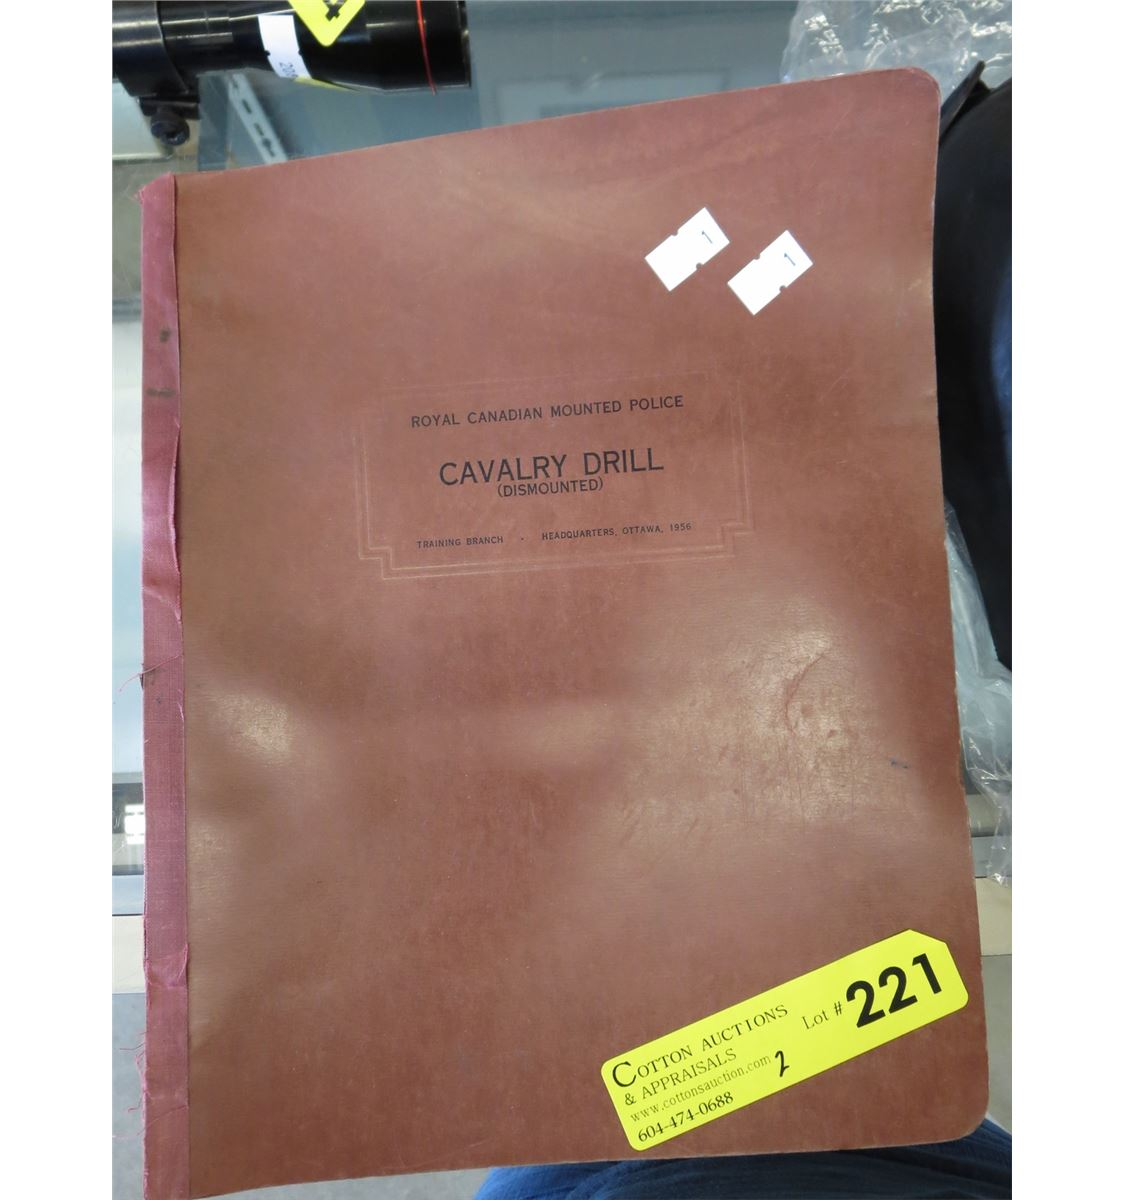 1957 RCMP cavalry drill manual